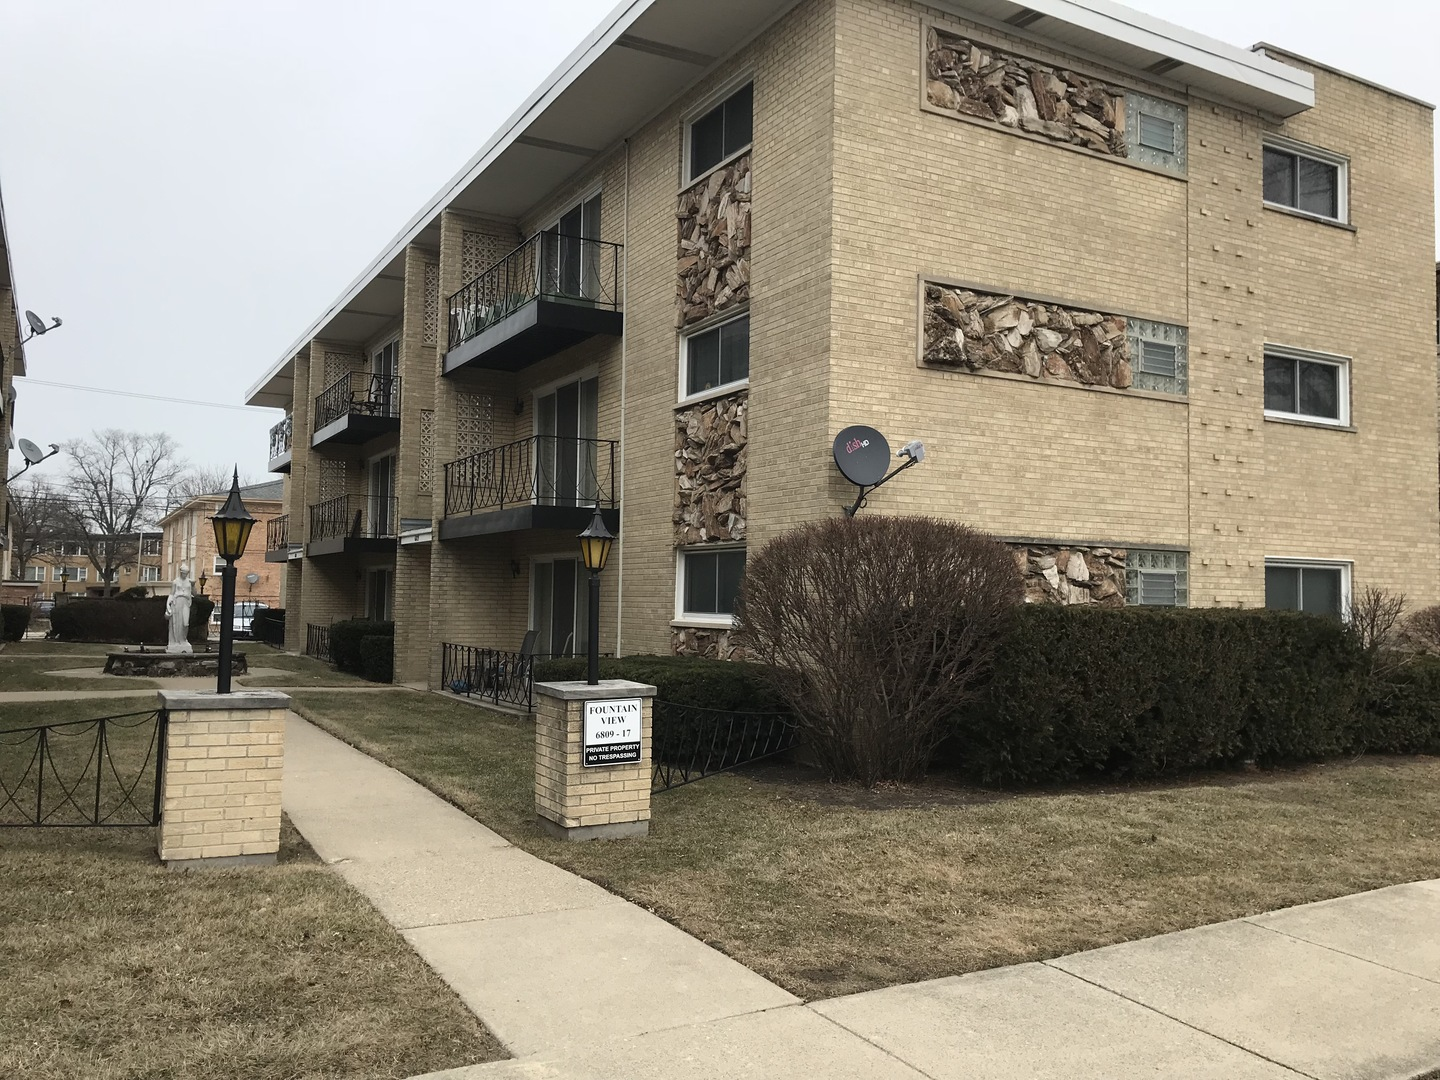 6811 Olmsted Unit Unit 105 ,Chicago, Illinois 60631